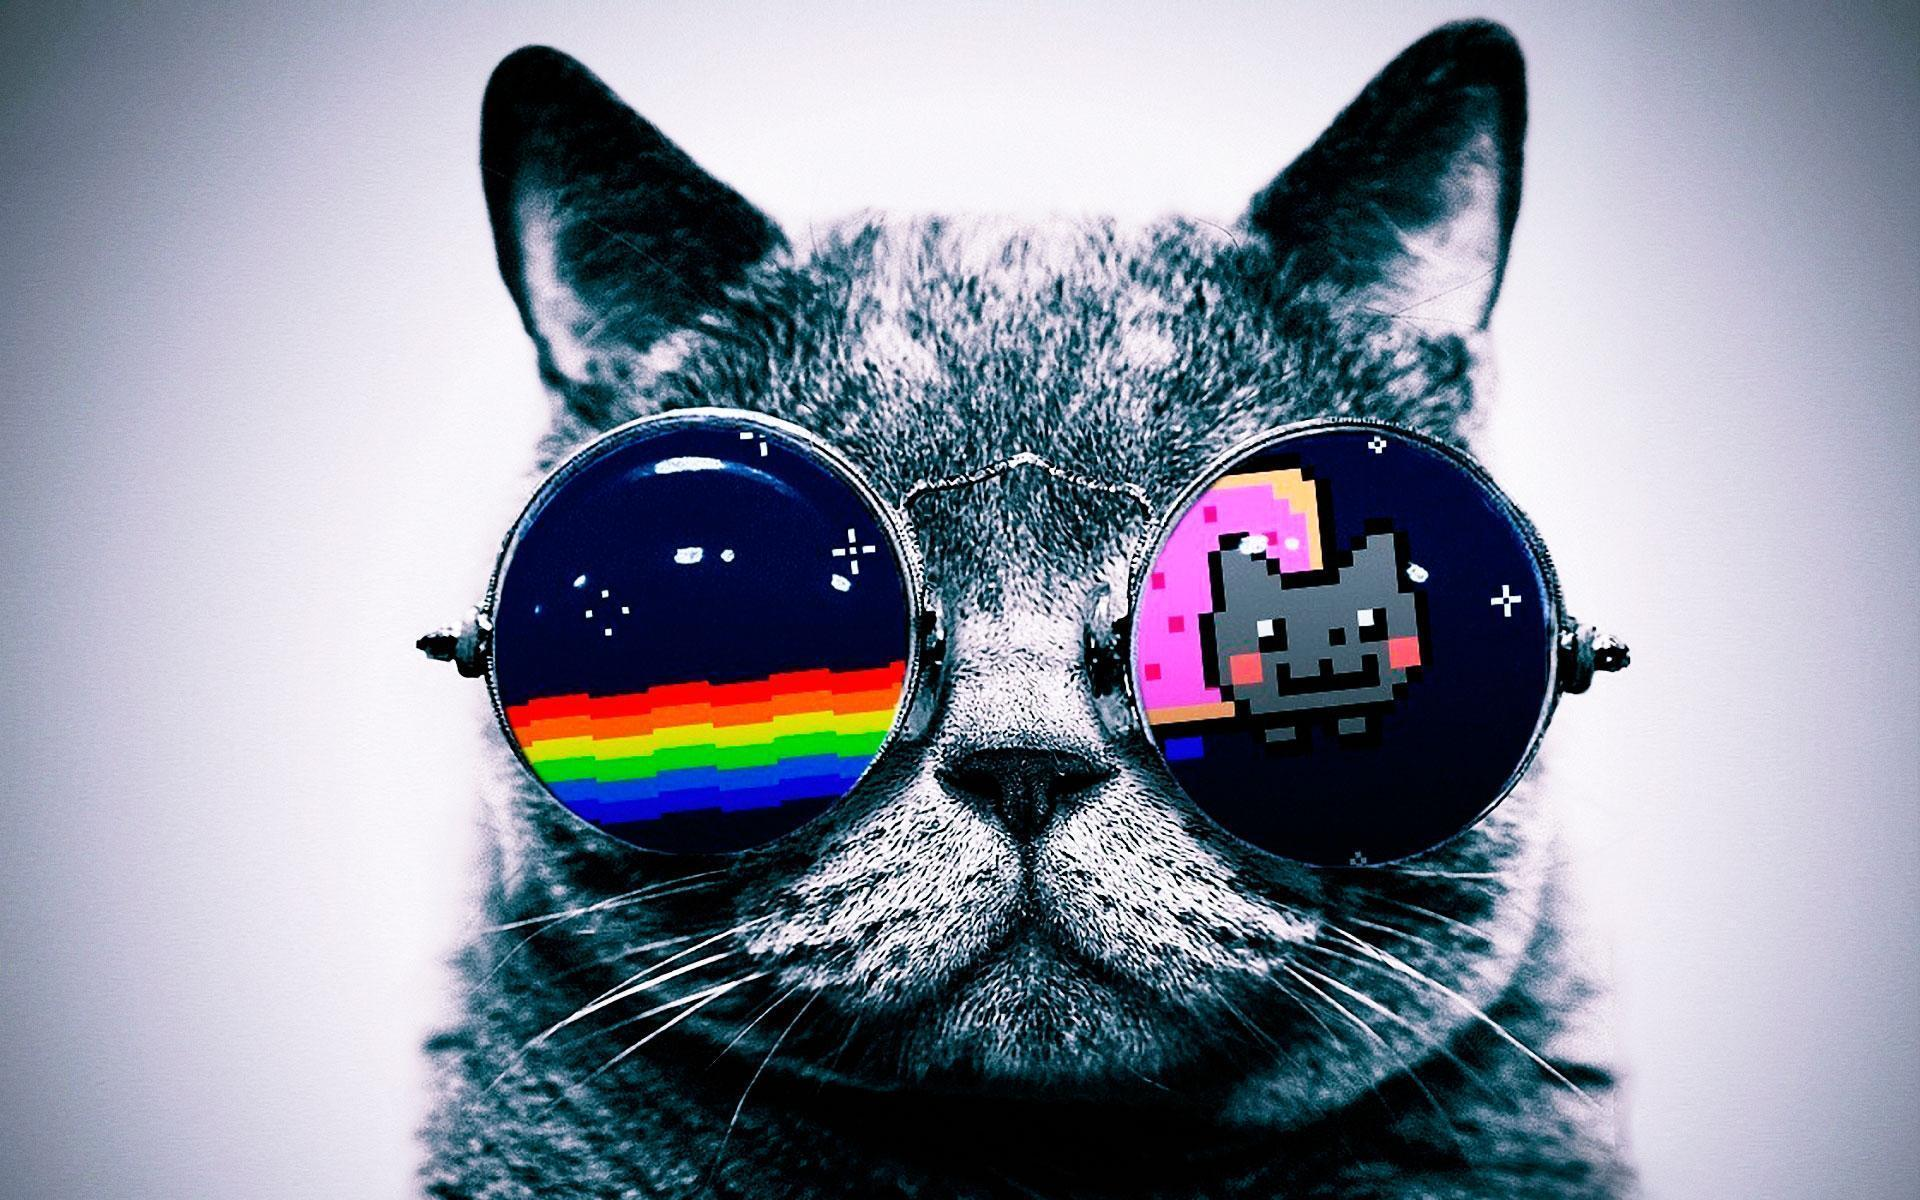 Cool Cat Wallpaper